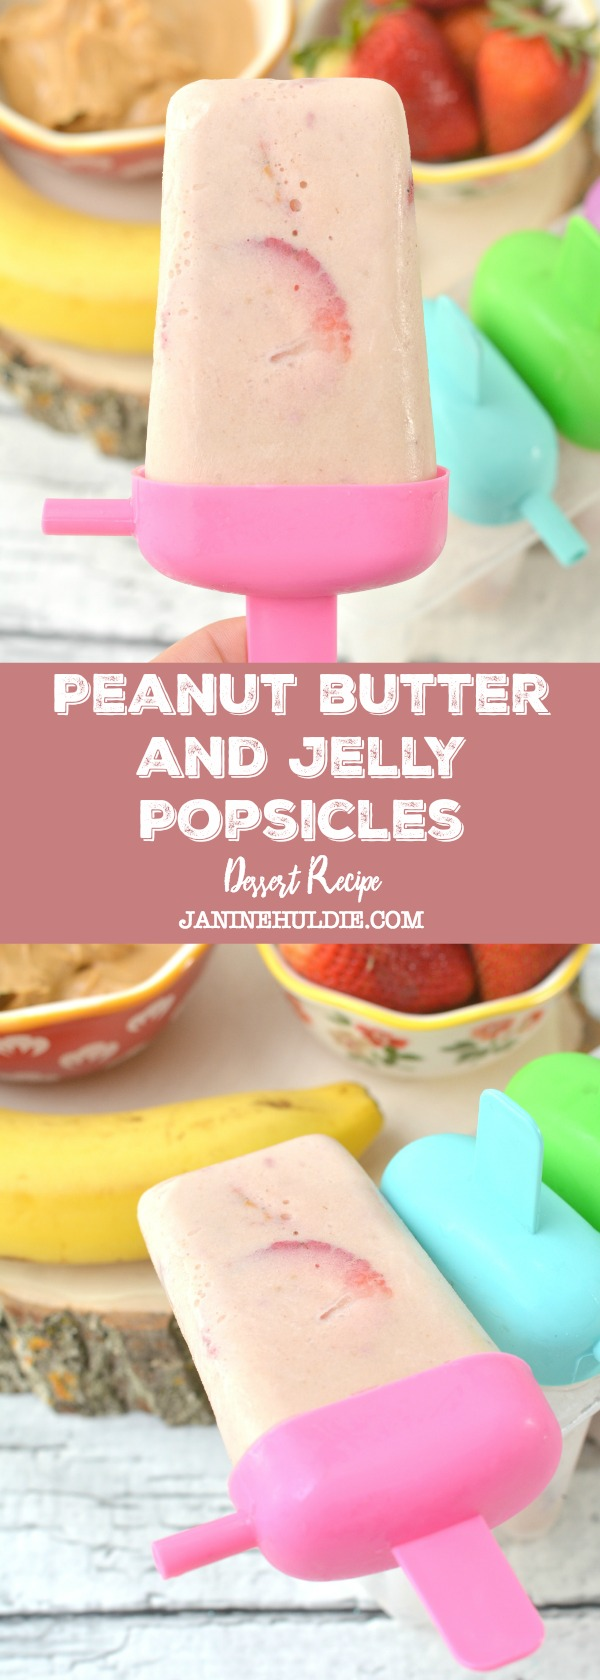 Peanut Butter and Jelly Popsicles, This Mom's Confessions